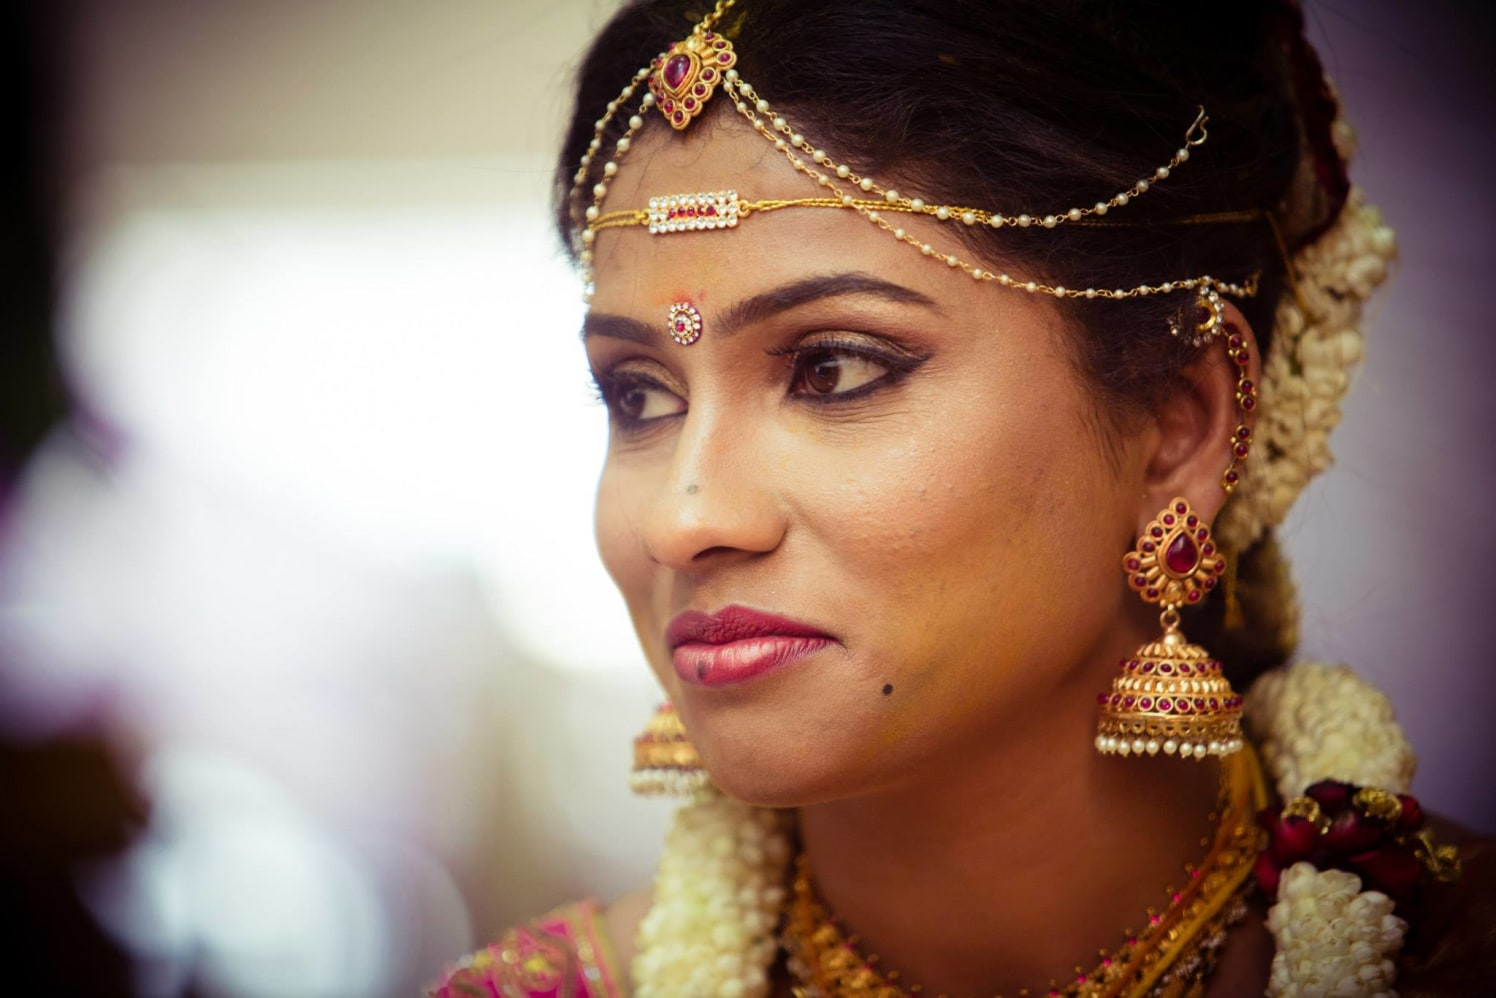 South Indian Bride Wearing Traditional Gold Jewelry by Bosco Naveen Bridal-makeup Bridal-jewellery-and-accessories | Weddings Photos & Ideas